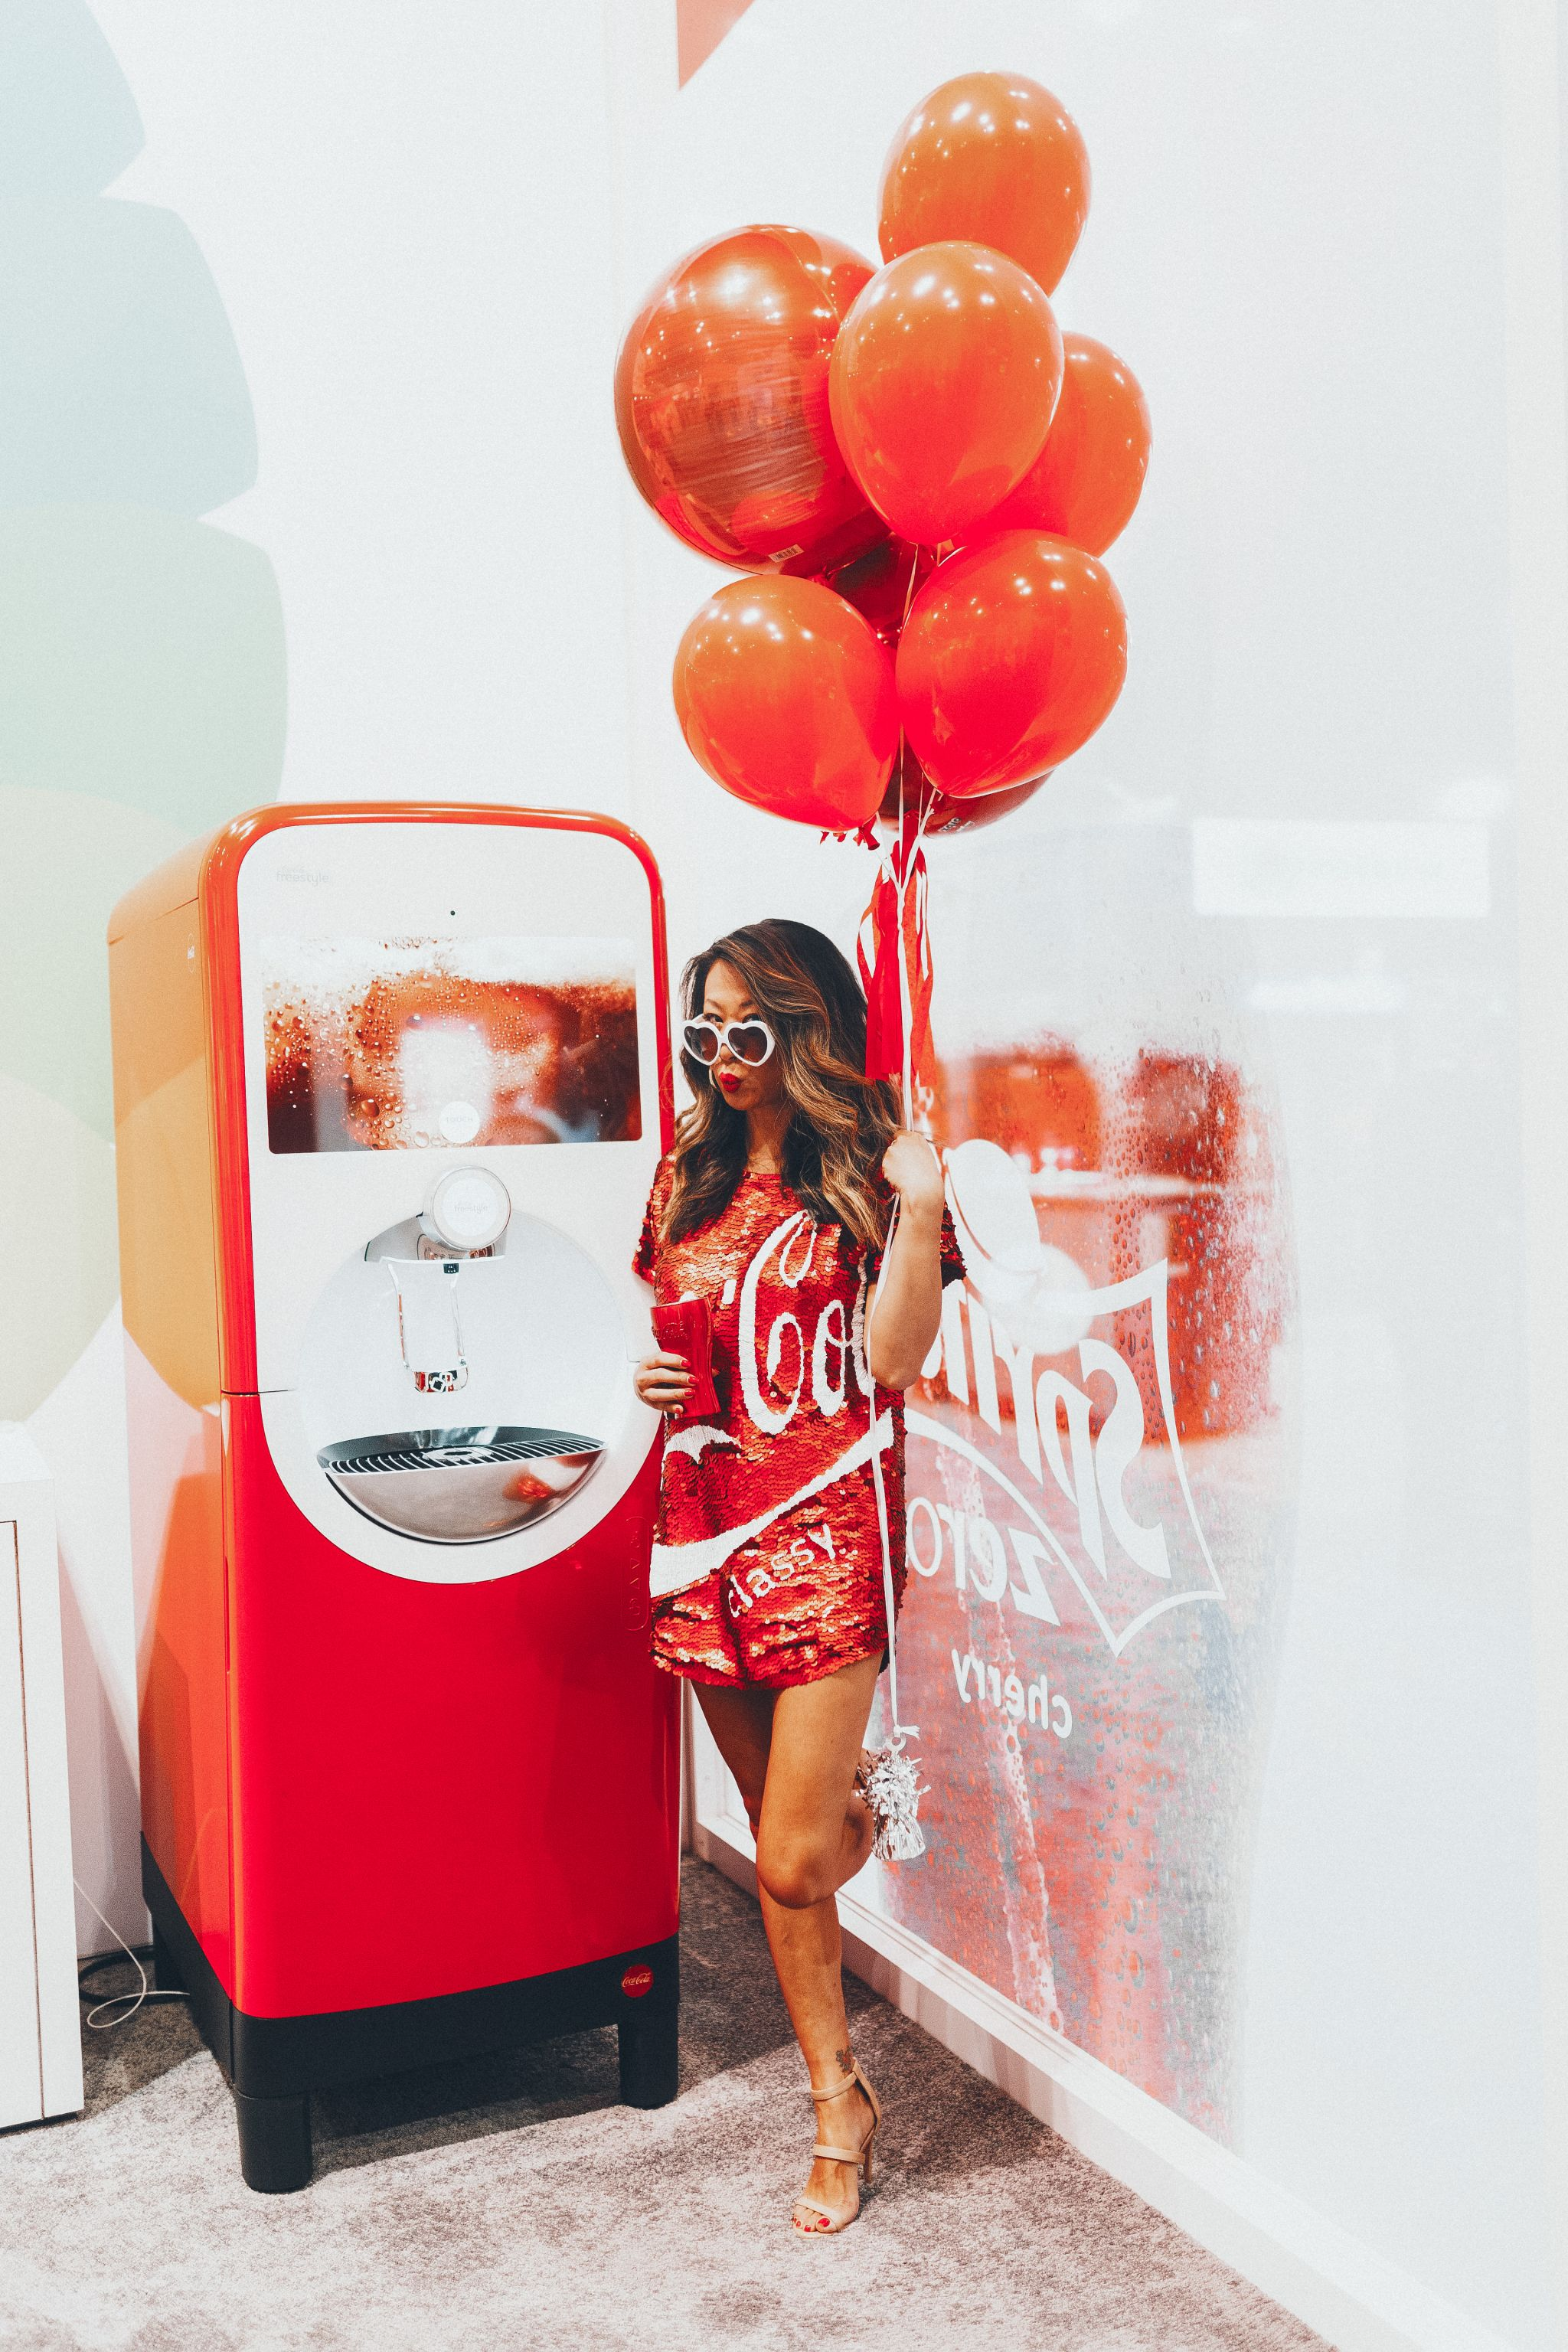 Coca Cola Sequin Dress, Coke Dress, Chicago Food Blogger, Jennifer Worman, Coca Cola Attire